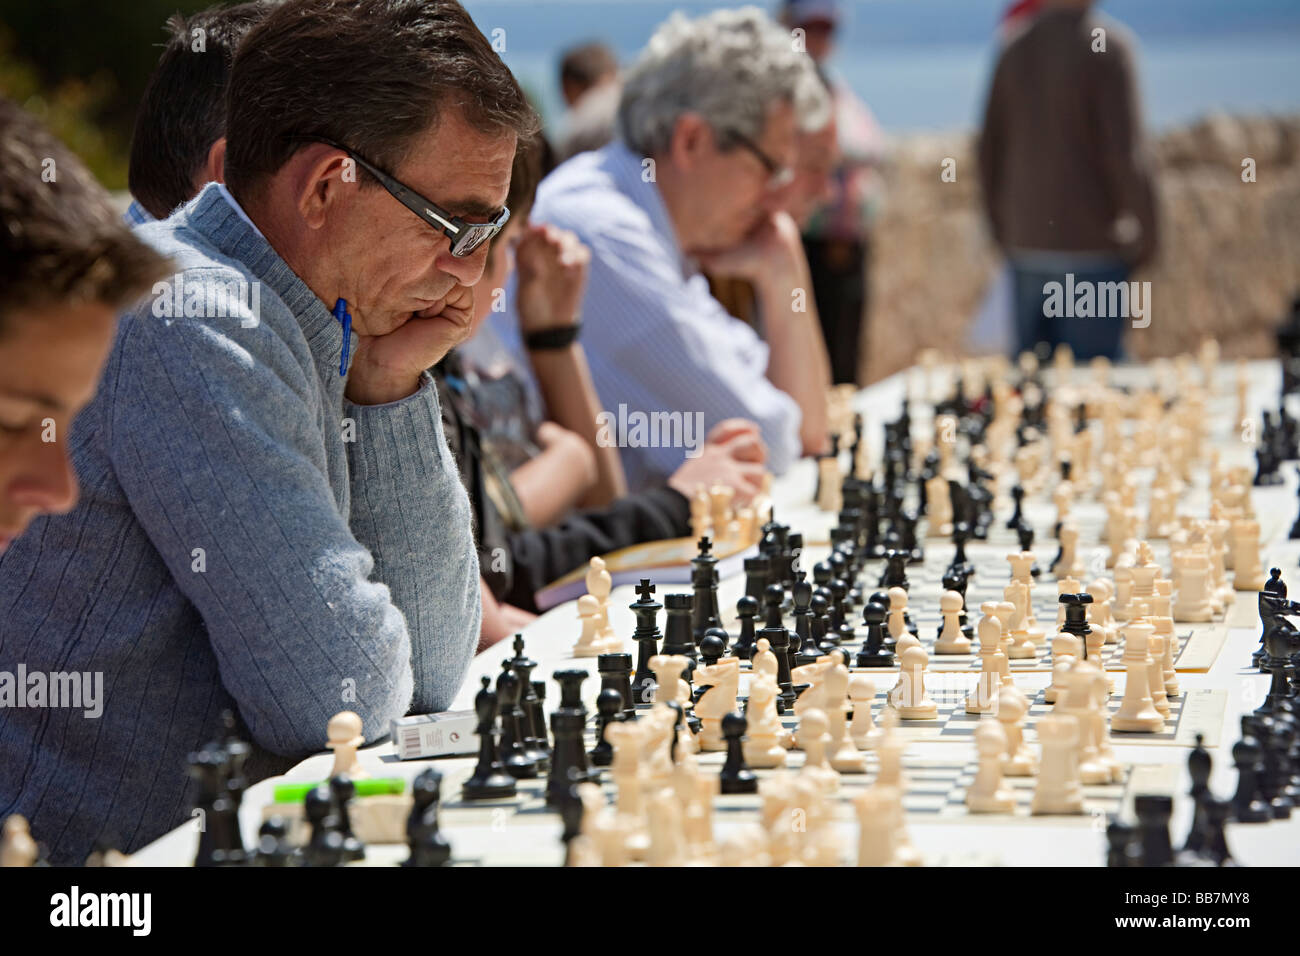 People playing chess in outdoor tournament Palma Mallorca Spain - Stock Image